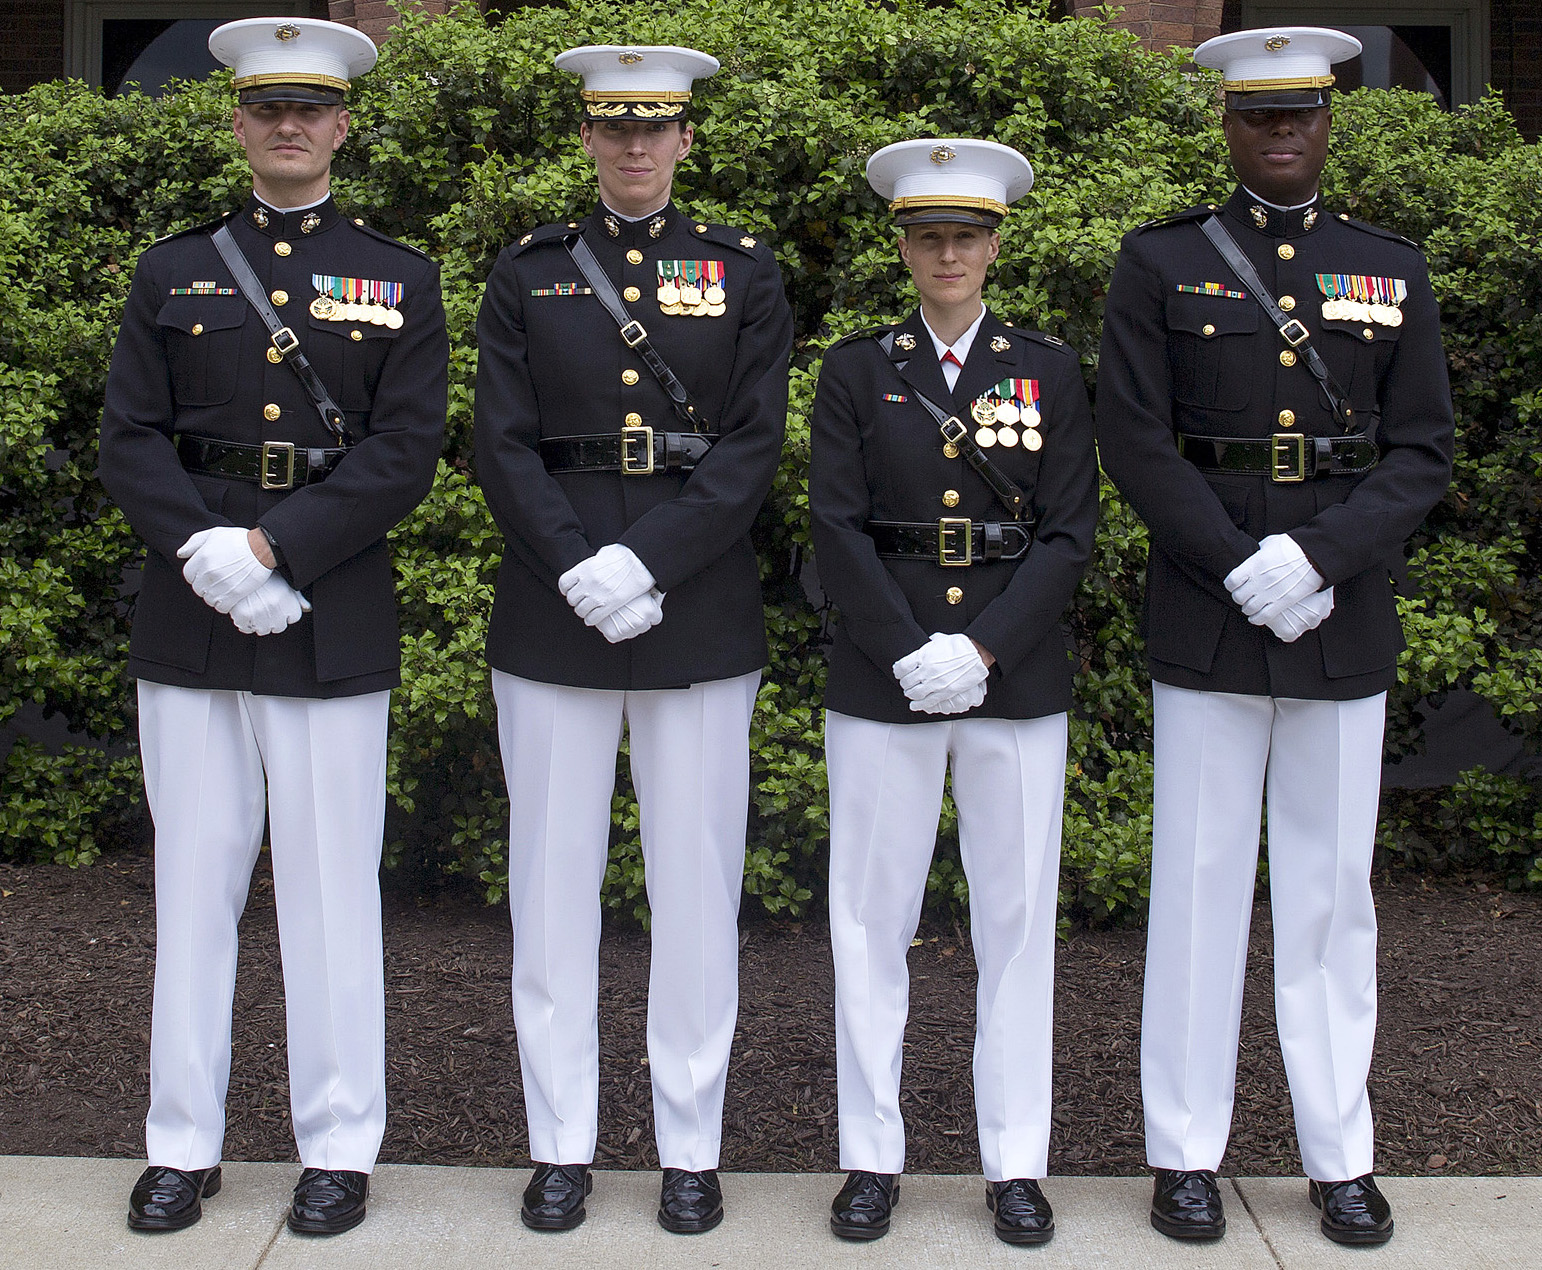 Wear it right! U. S. Marine corps uniform guide includes.